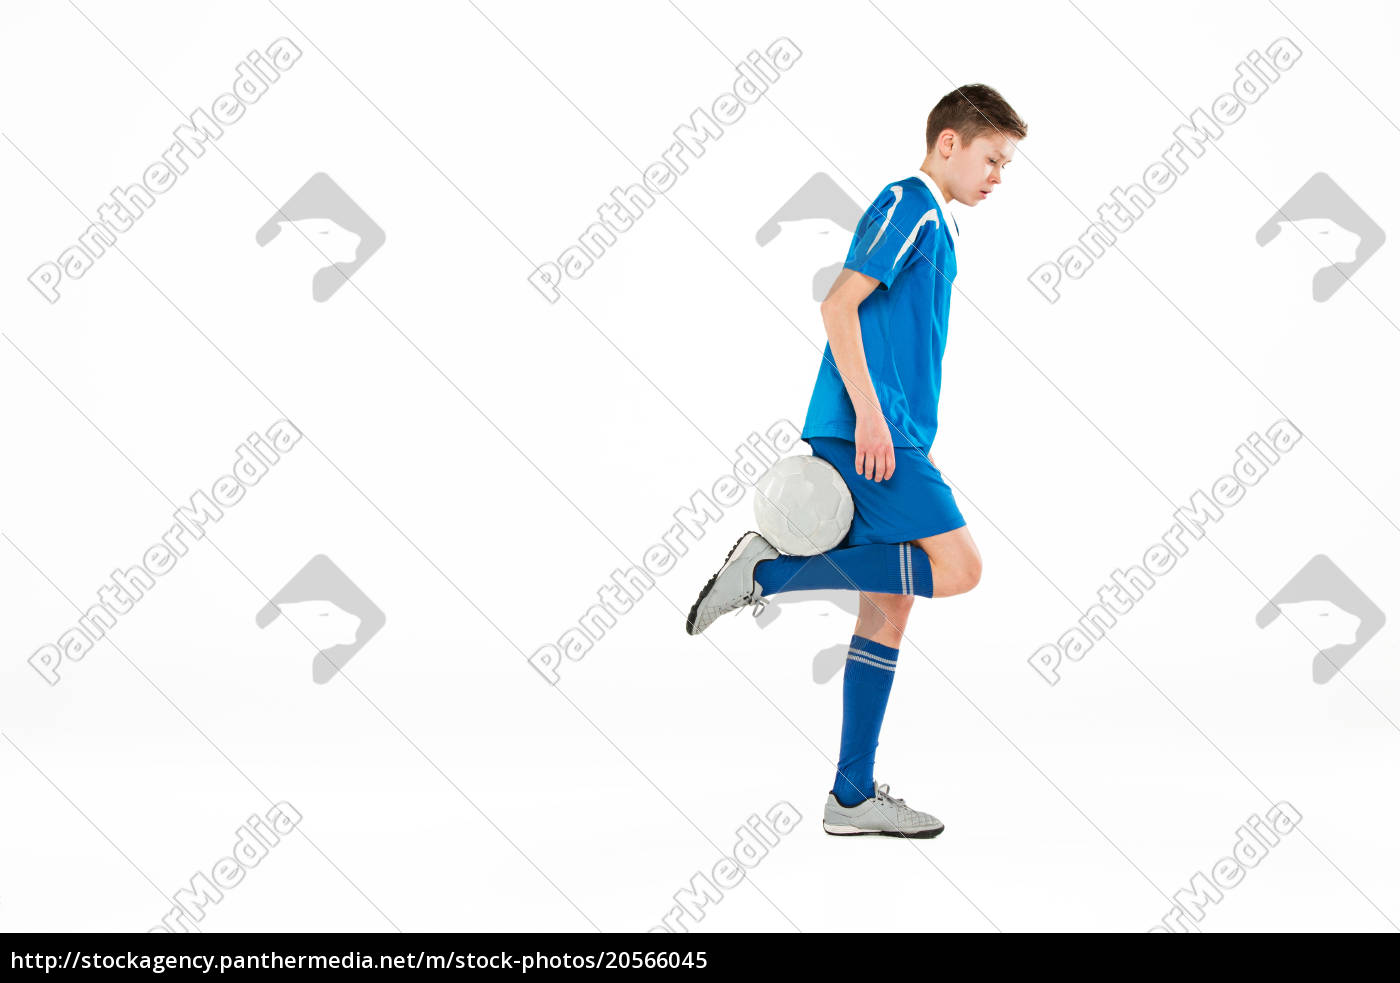 young, boy, with, soccer, ball, doing - 20566045